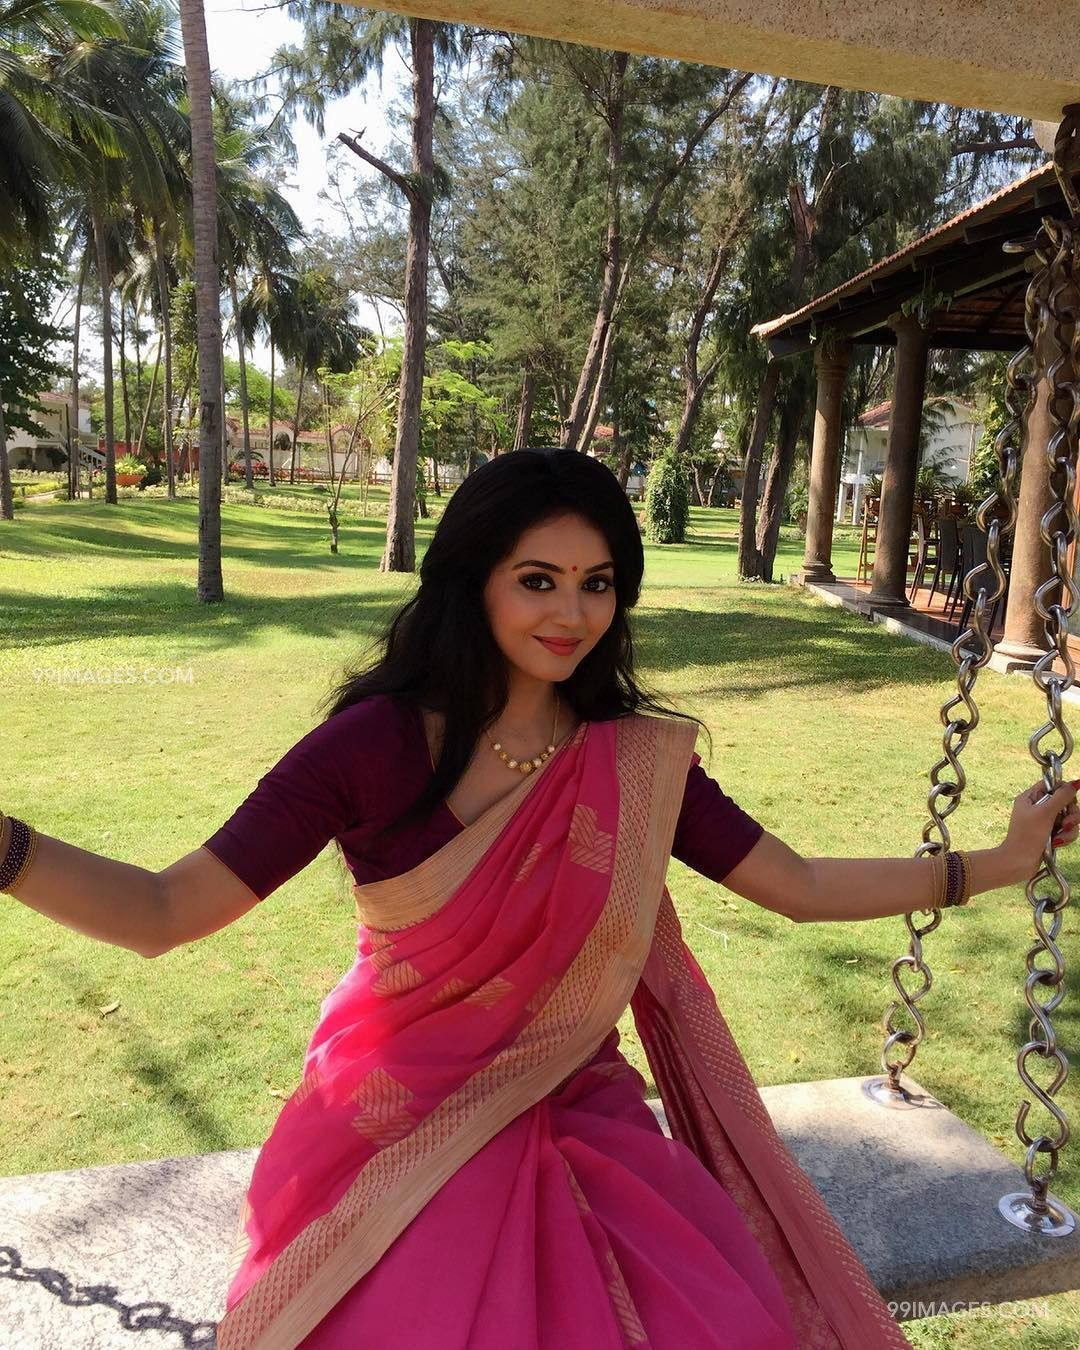 Vidhya Beautiful HD Photos & Mobile Wallpapers HD (Android/iPhone) (1080p) (18909) - Vidhya